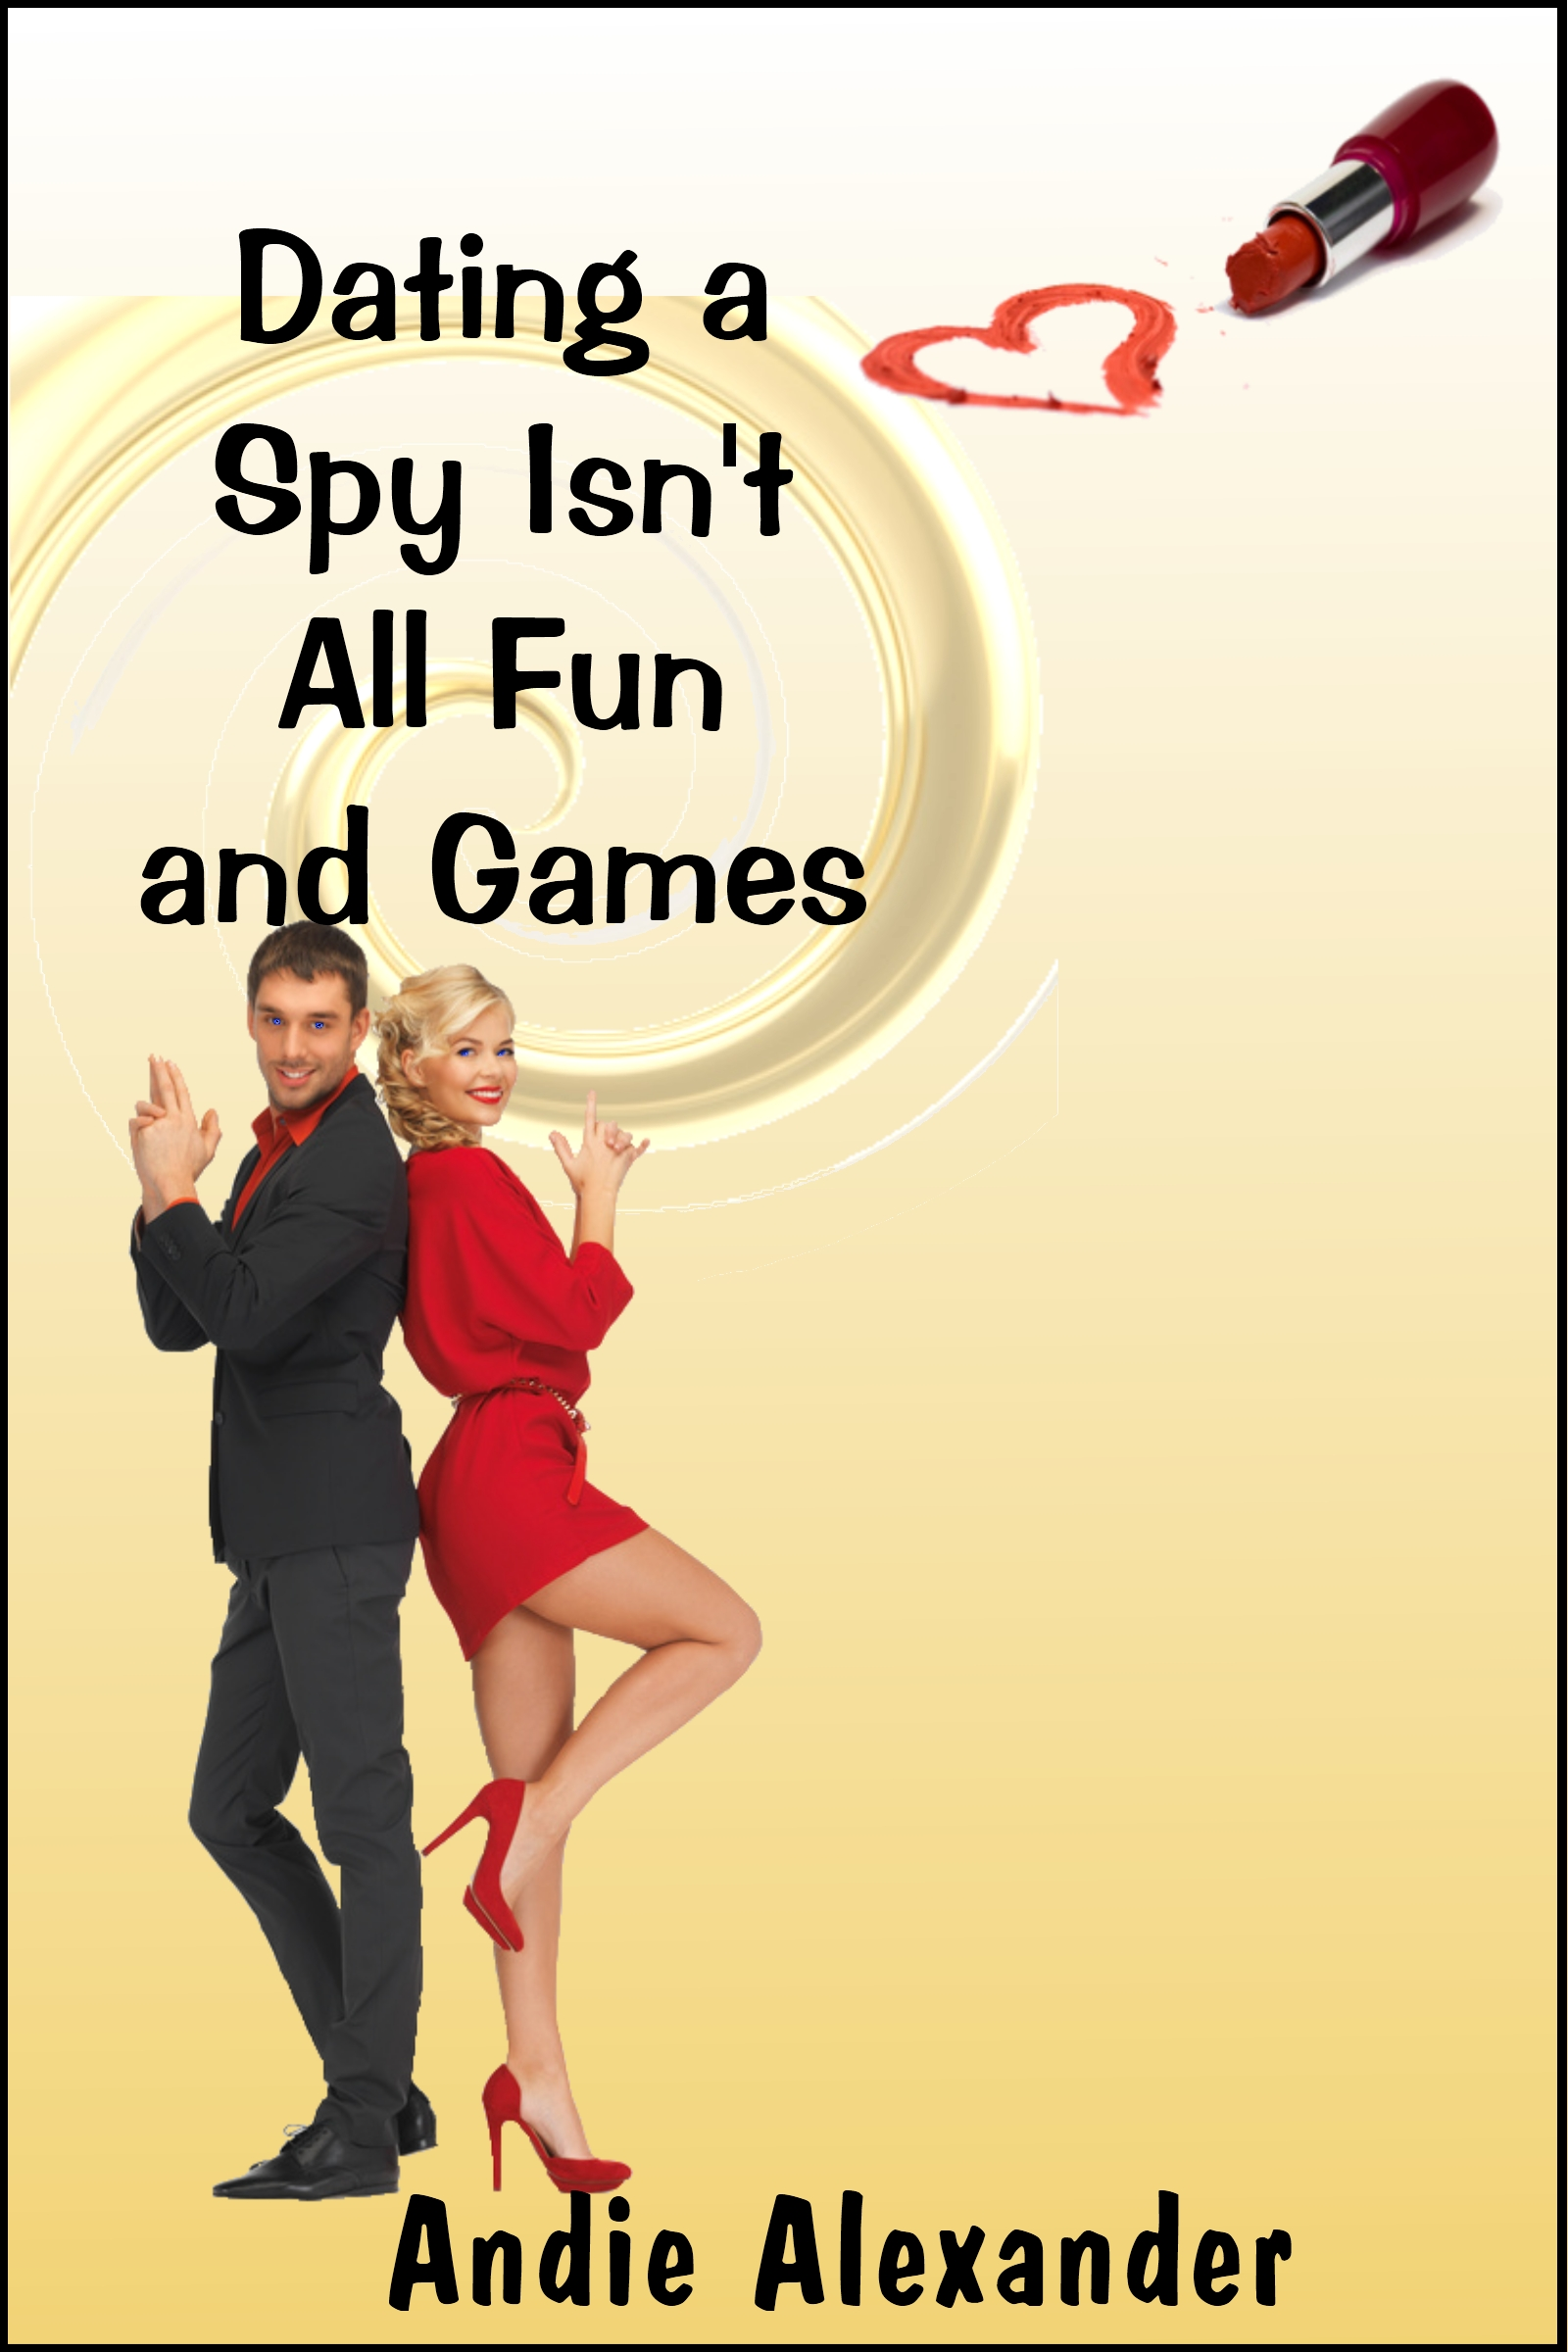 Dating a Spy Isn't All Fun and Games